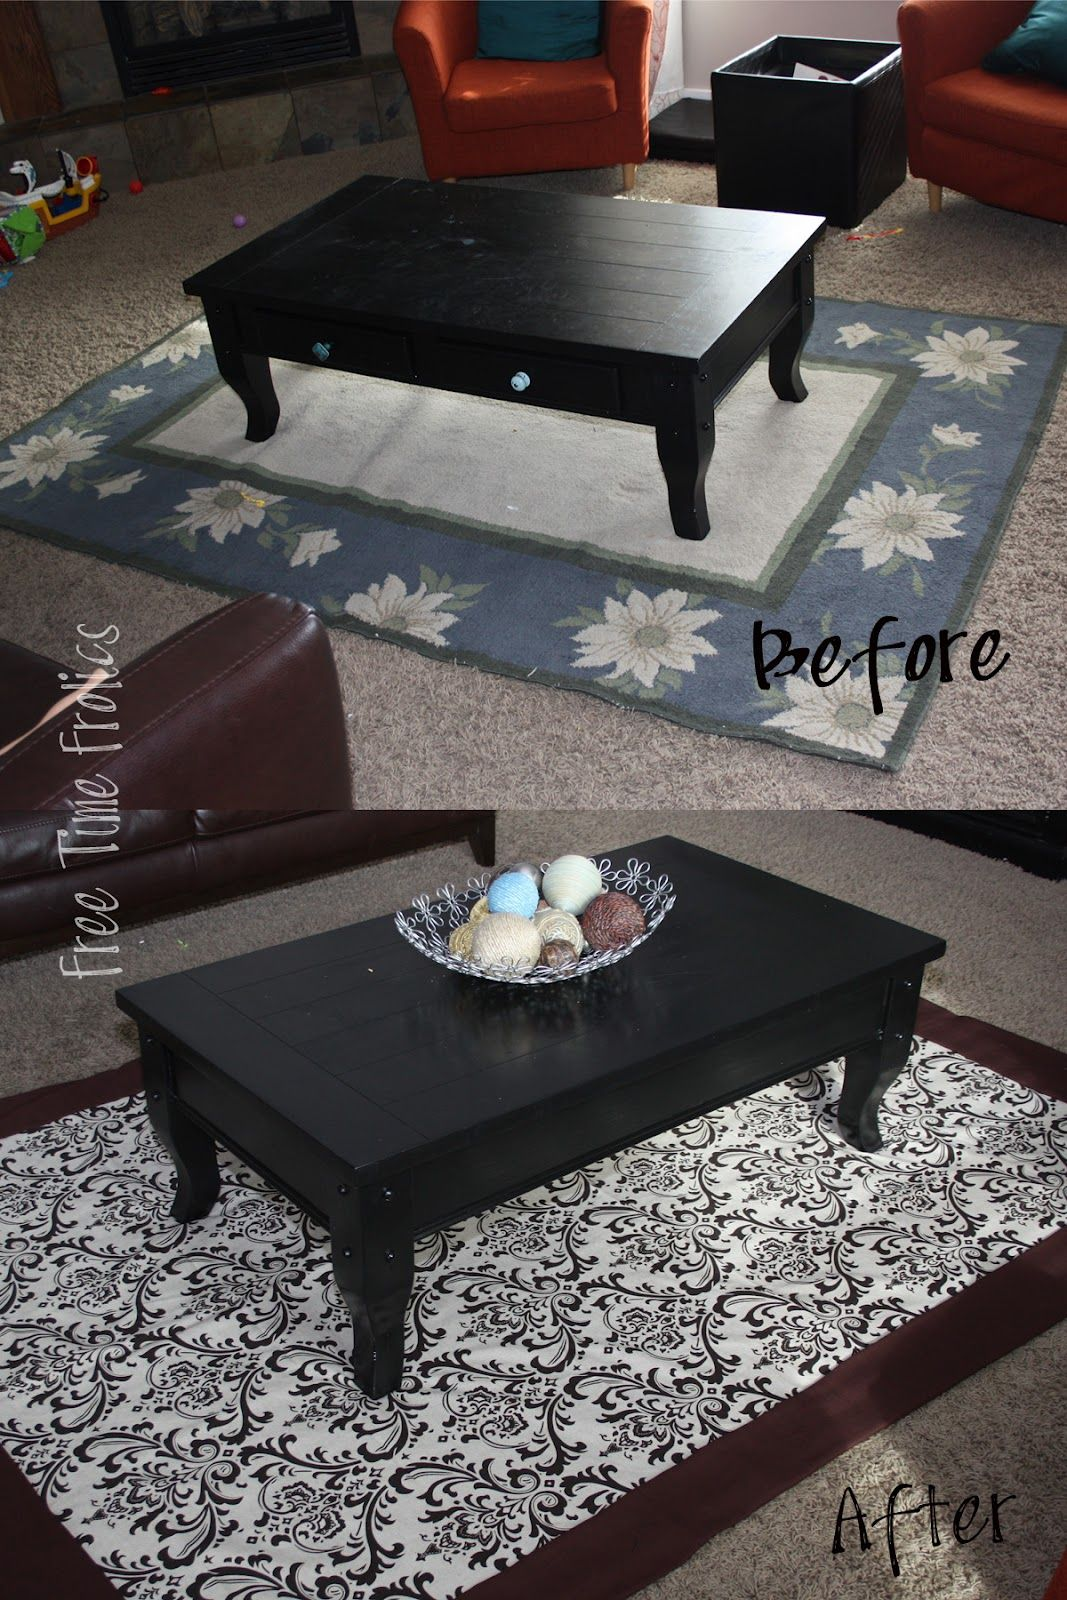 25 Spring Projects to Make...Slip cover for rug